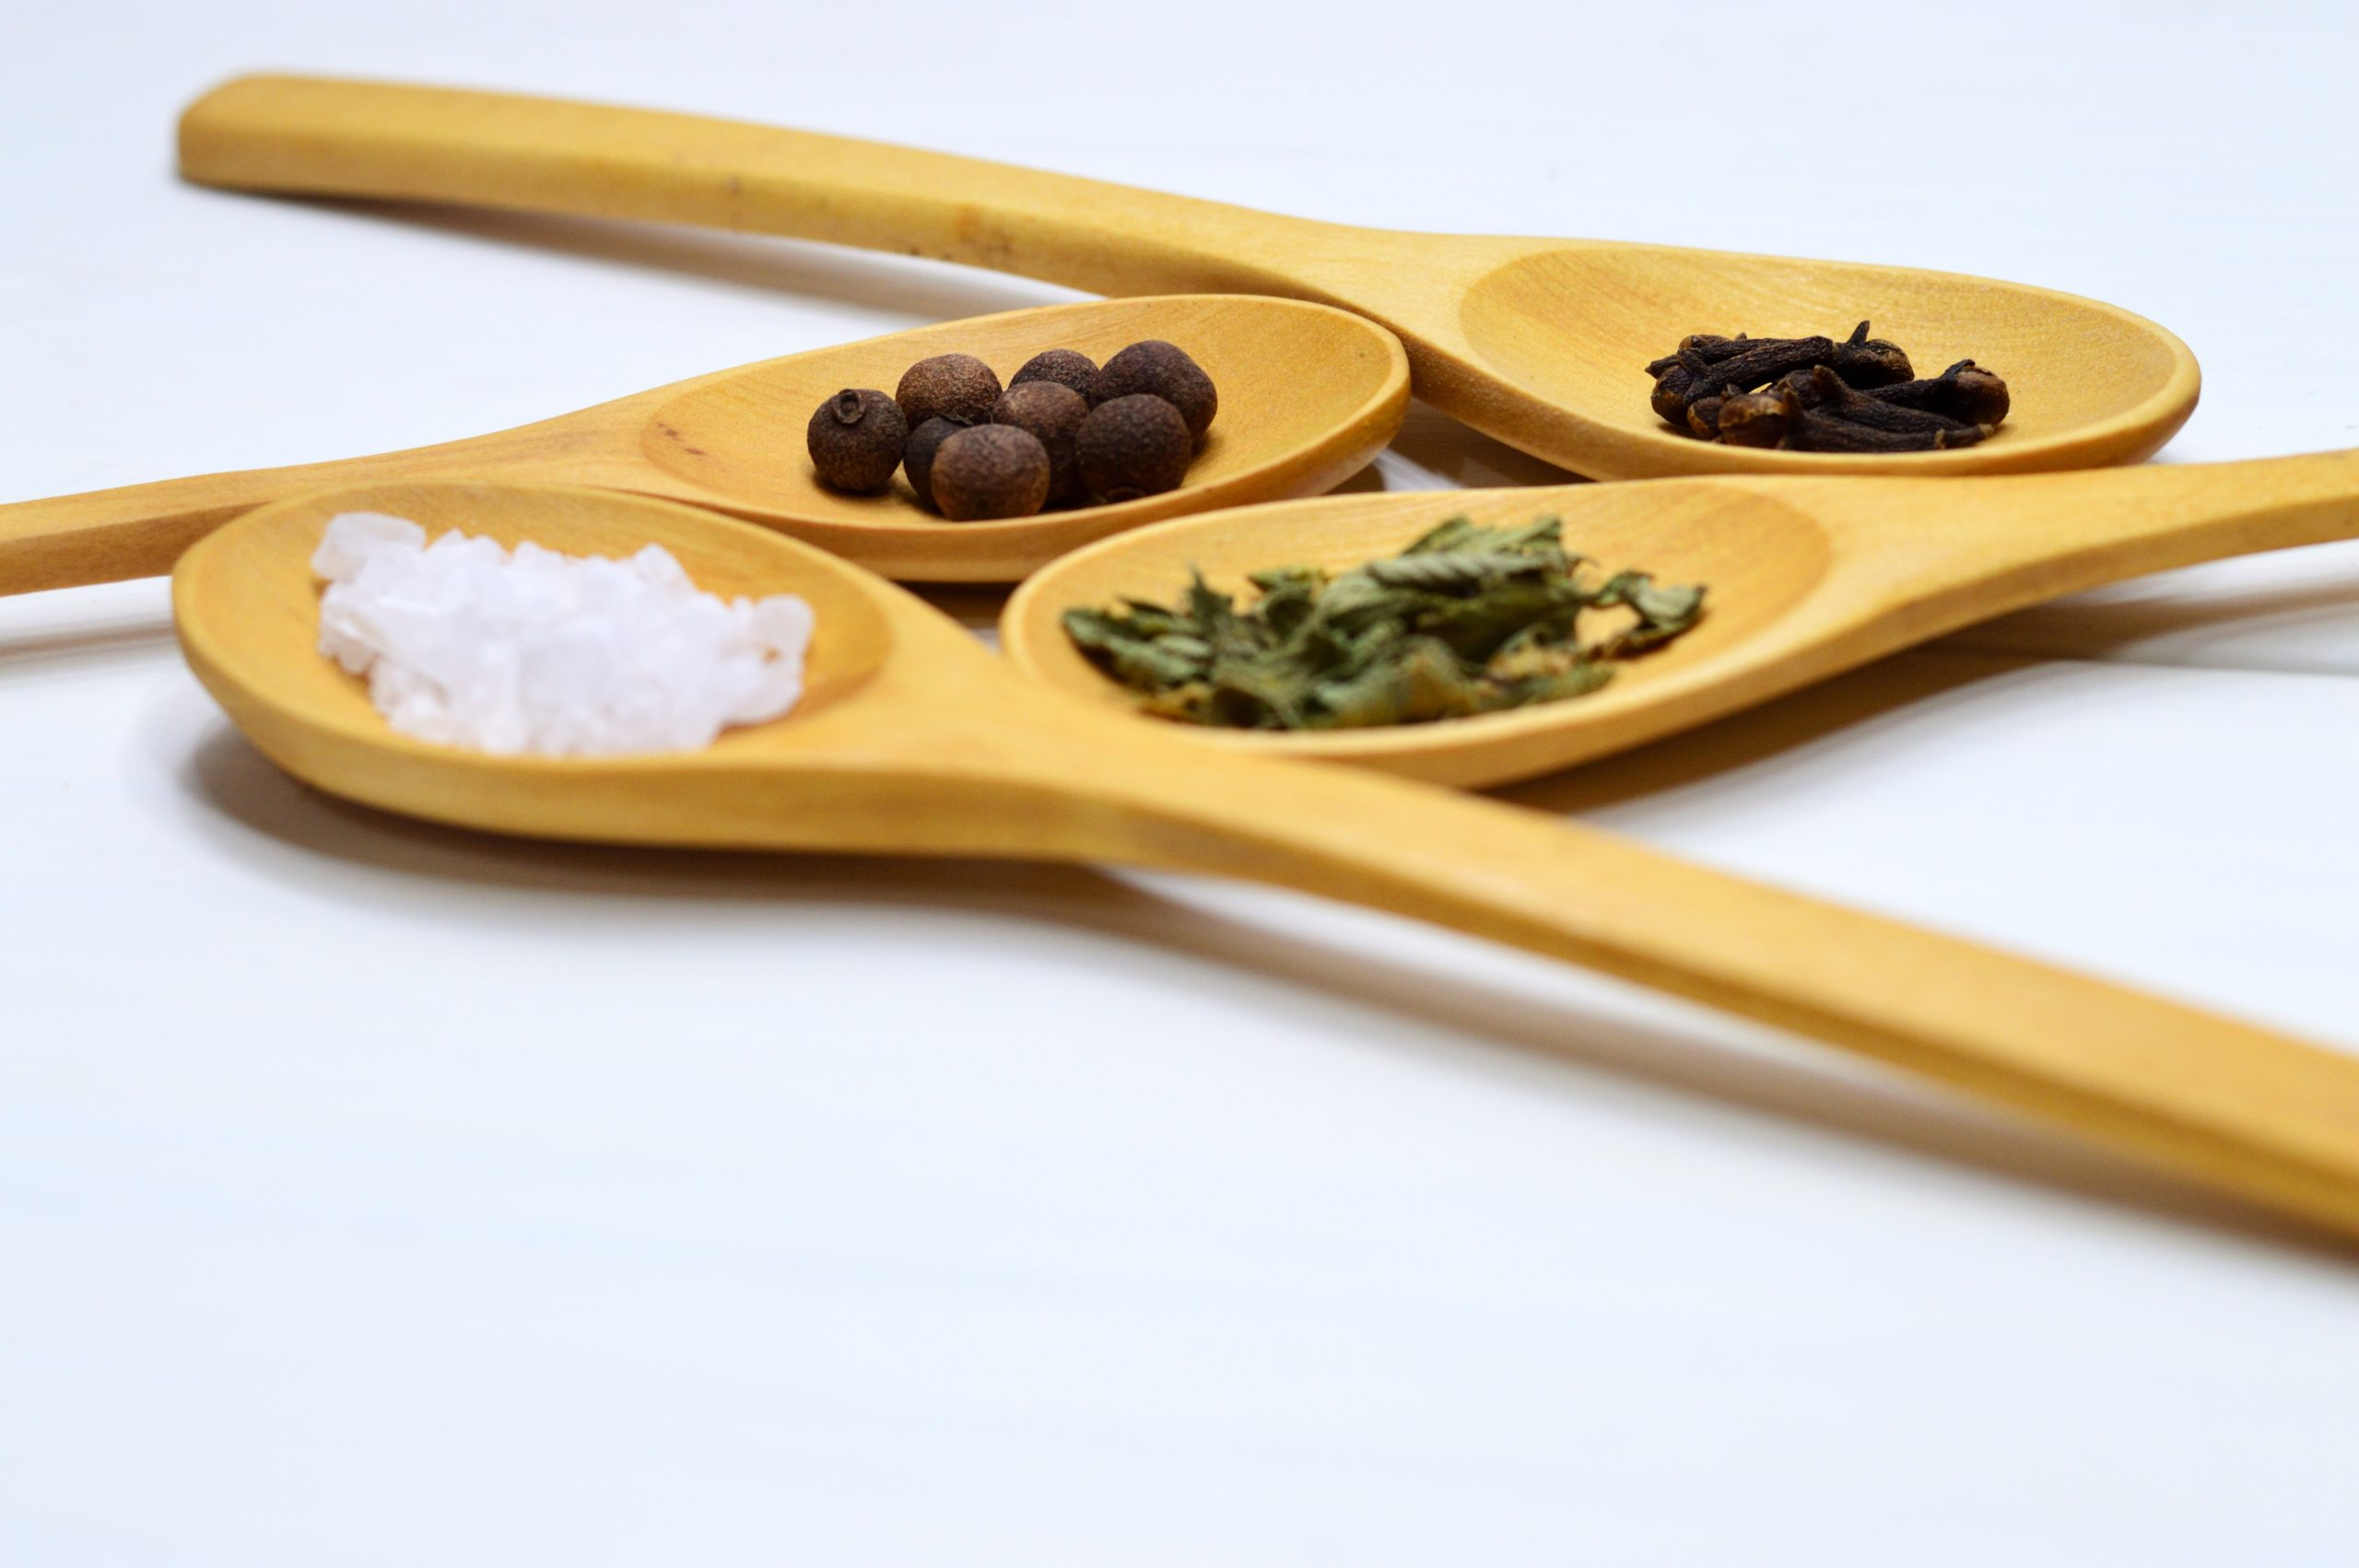 Food and drink PR for spicing up catering company - spices on spoons